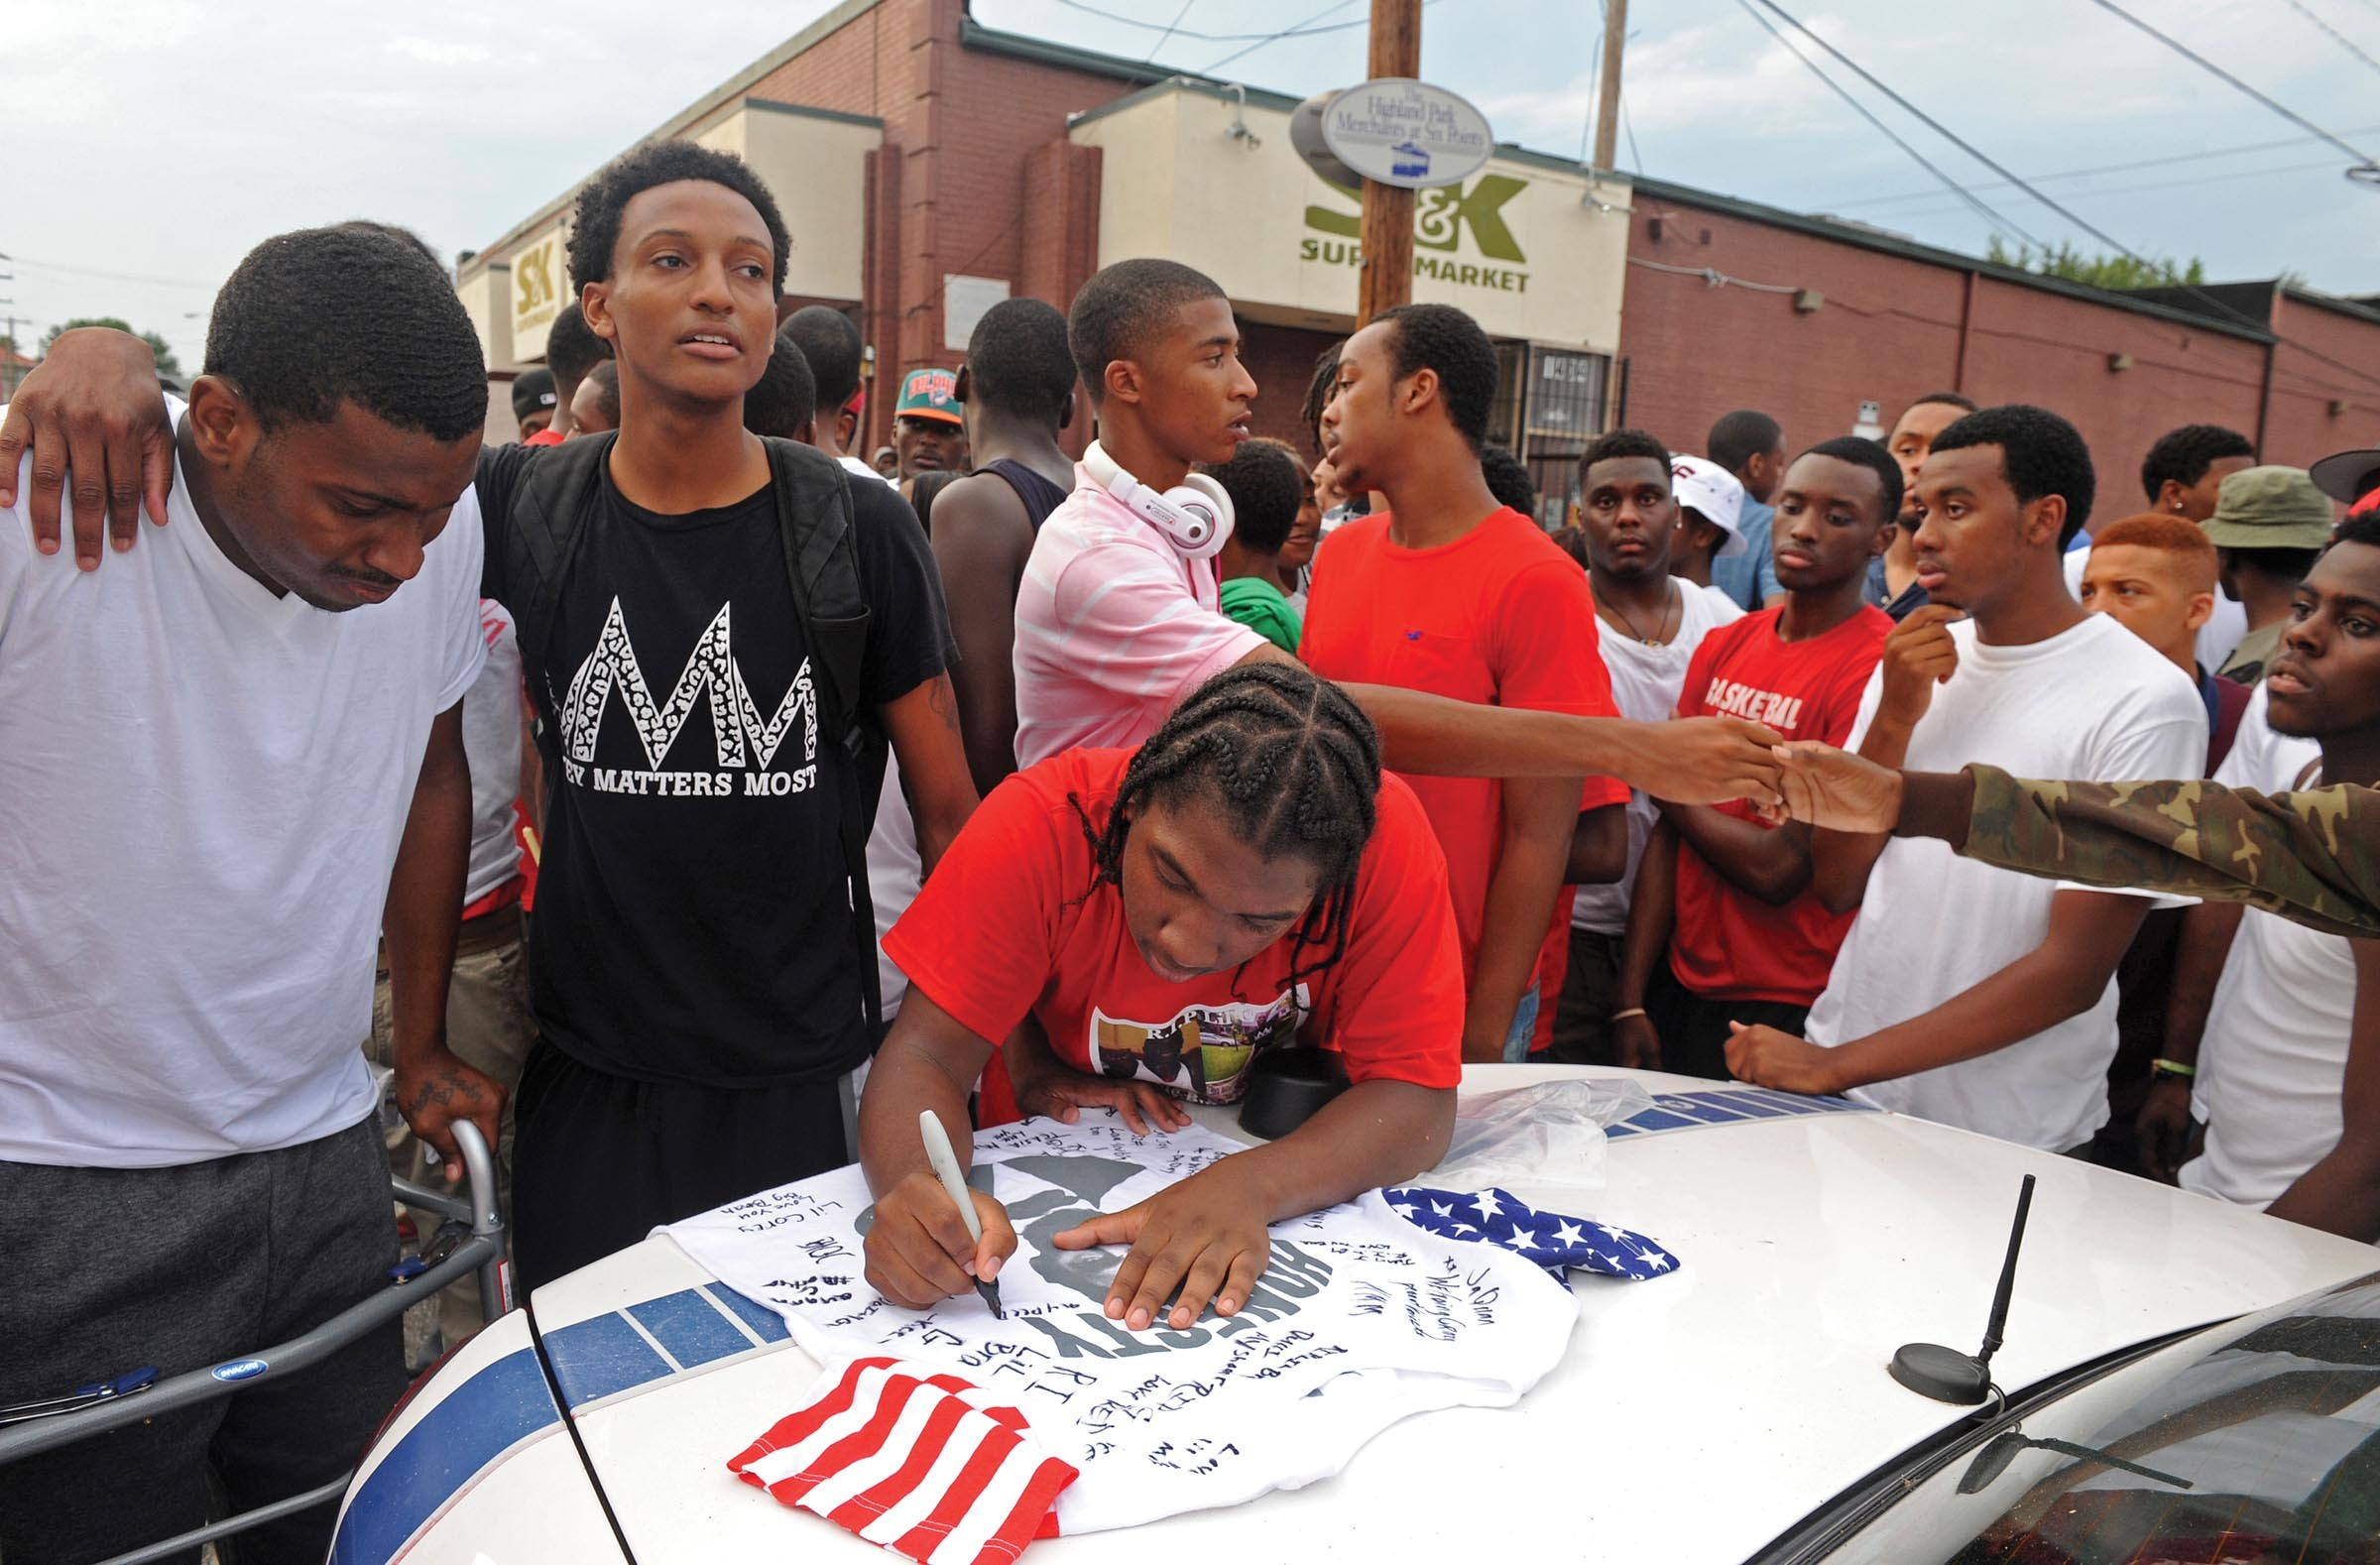 Garrick's friend, Danté Jackson, signs a T-shirt memorializing Garrick at his vigil. - SCOTT ELMQUIST